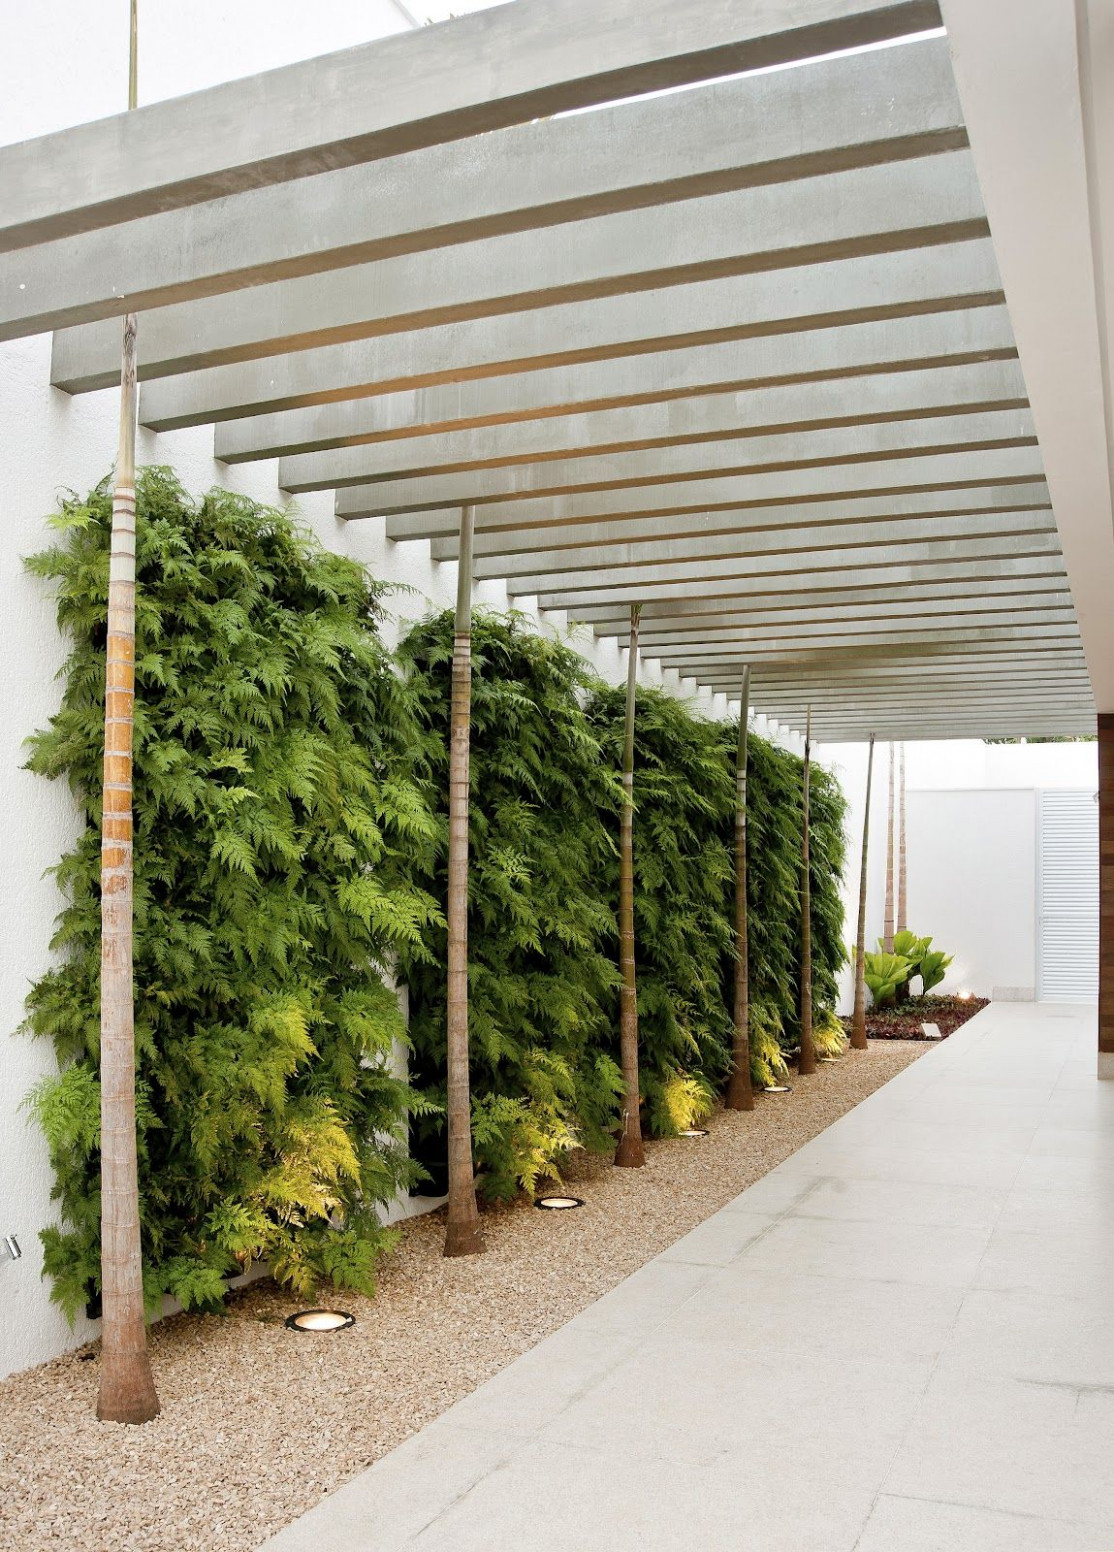 Neat Privacy Screen For A Carport (the Plants). Very Chunky ..